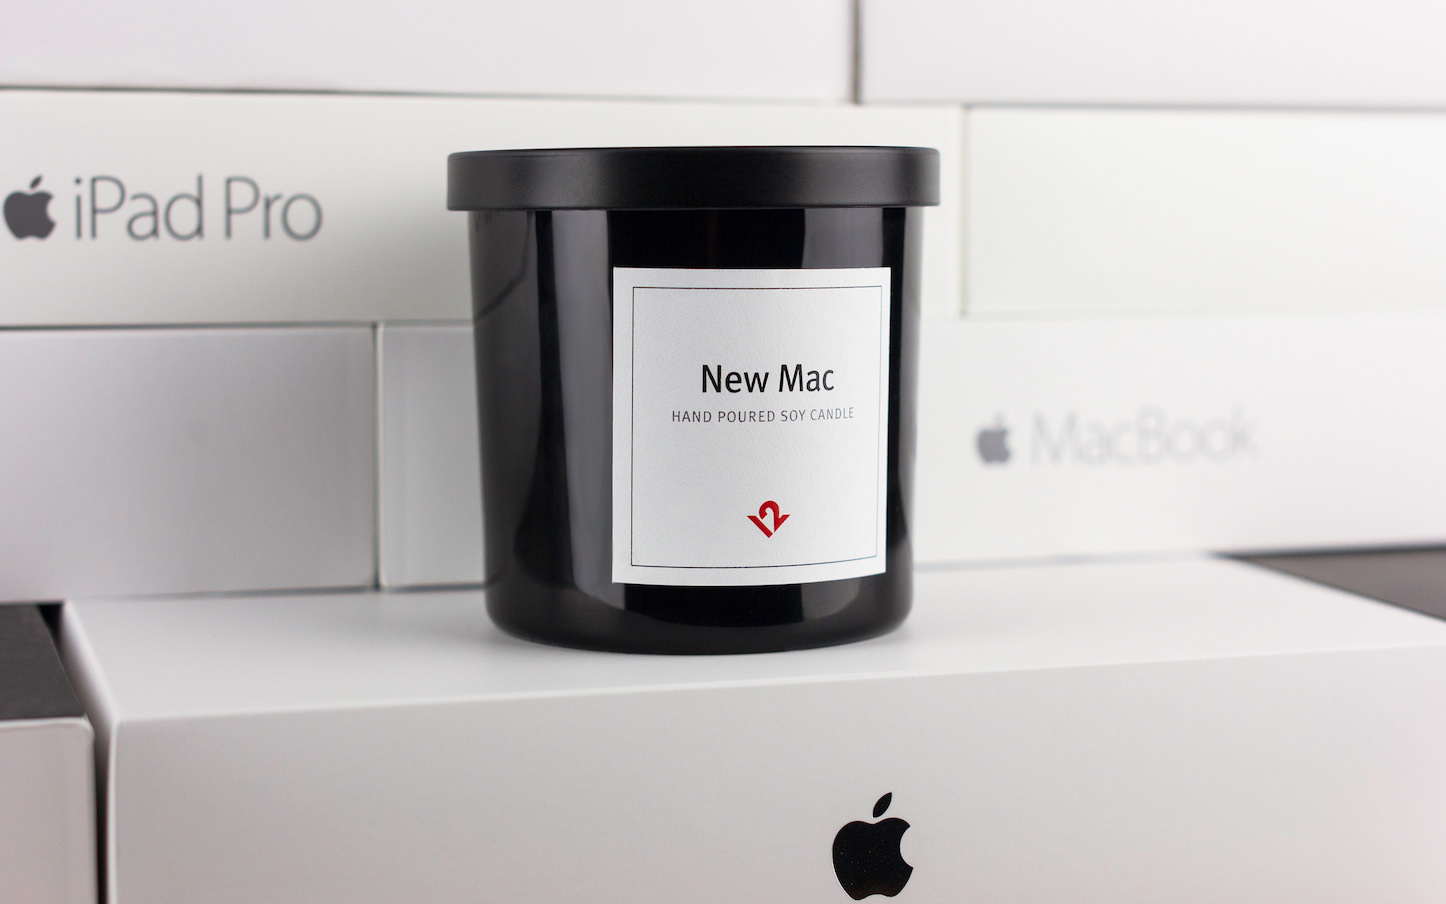 New Mac Hand Poured Soy Candle